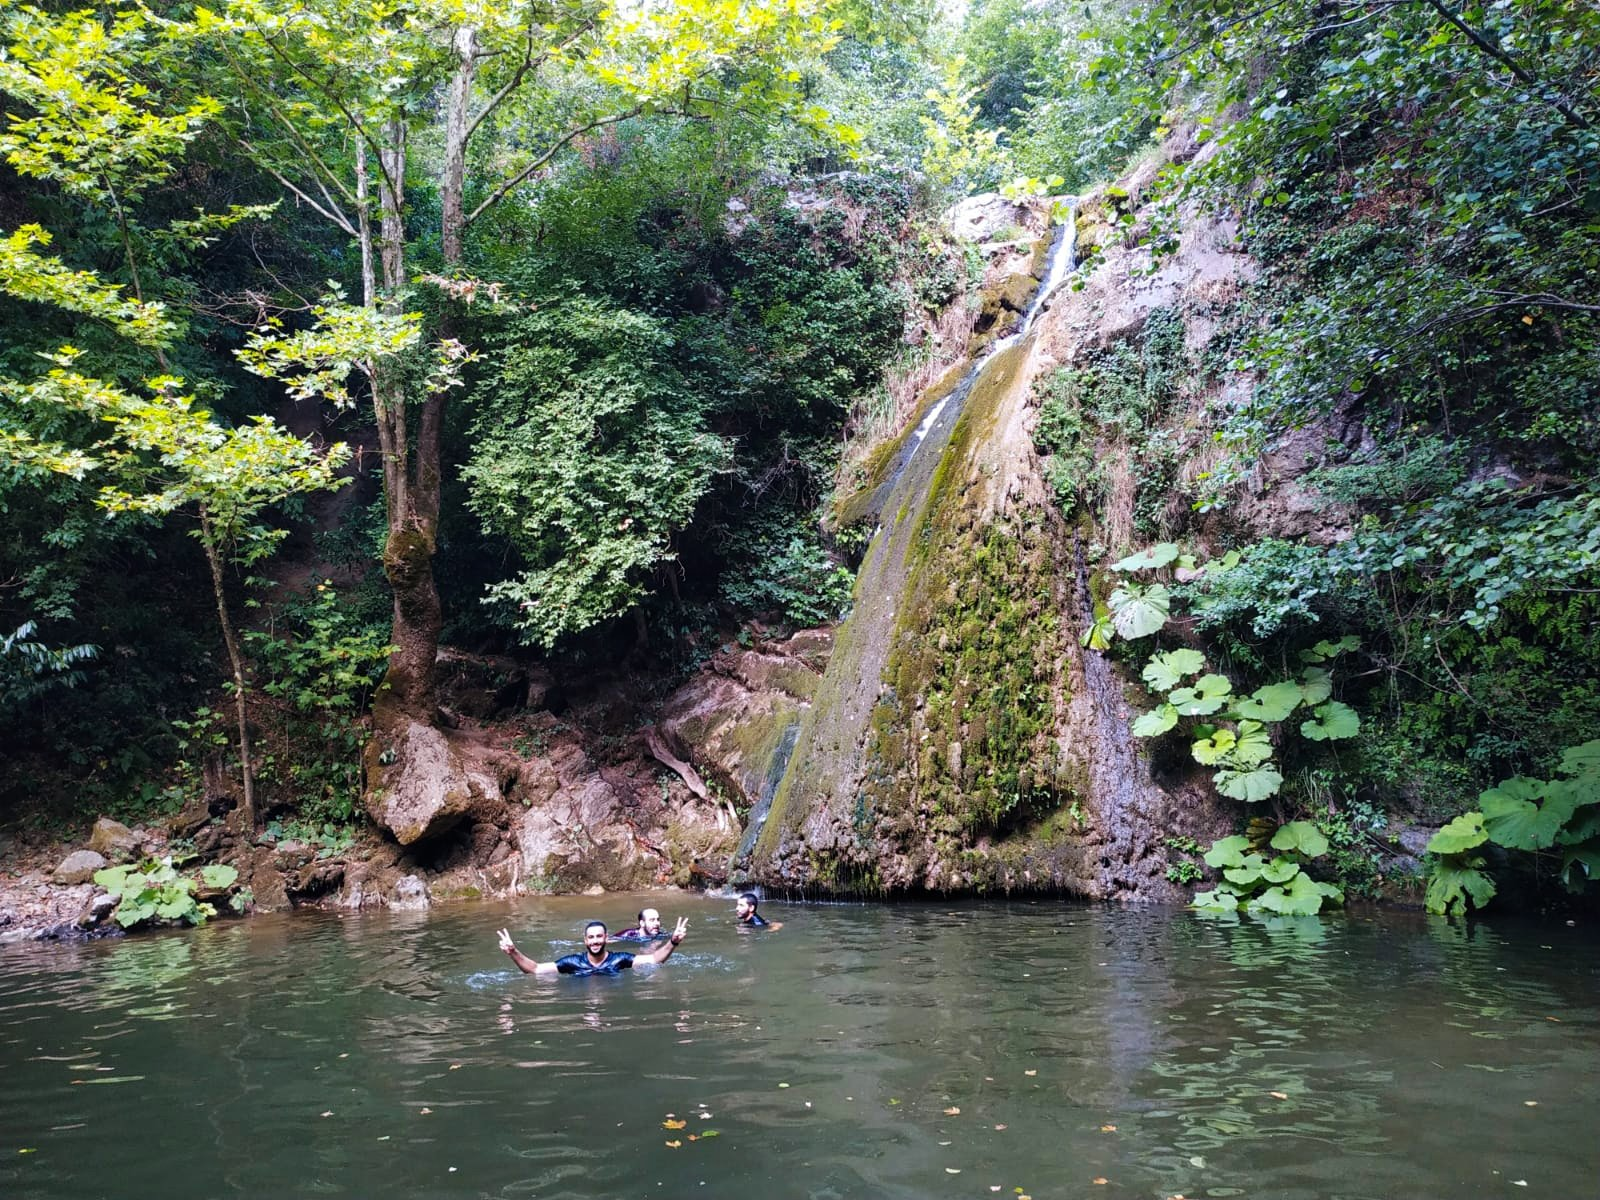 Lush forests and a waterfall await hikers in the town of Derince, Kocaeli, Turkey. (Photo by Linda Hyökki)